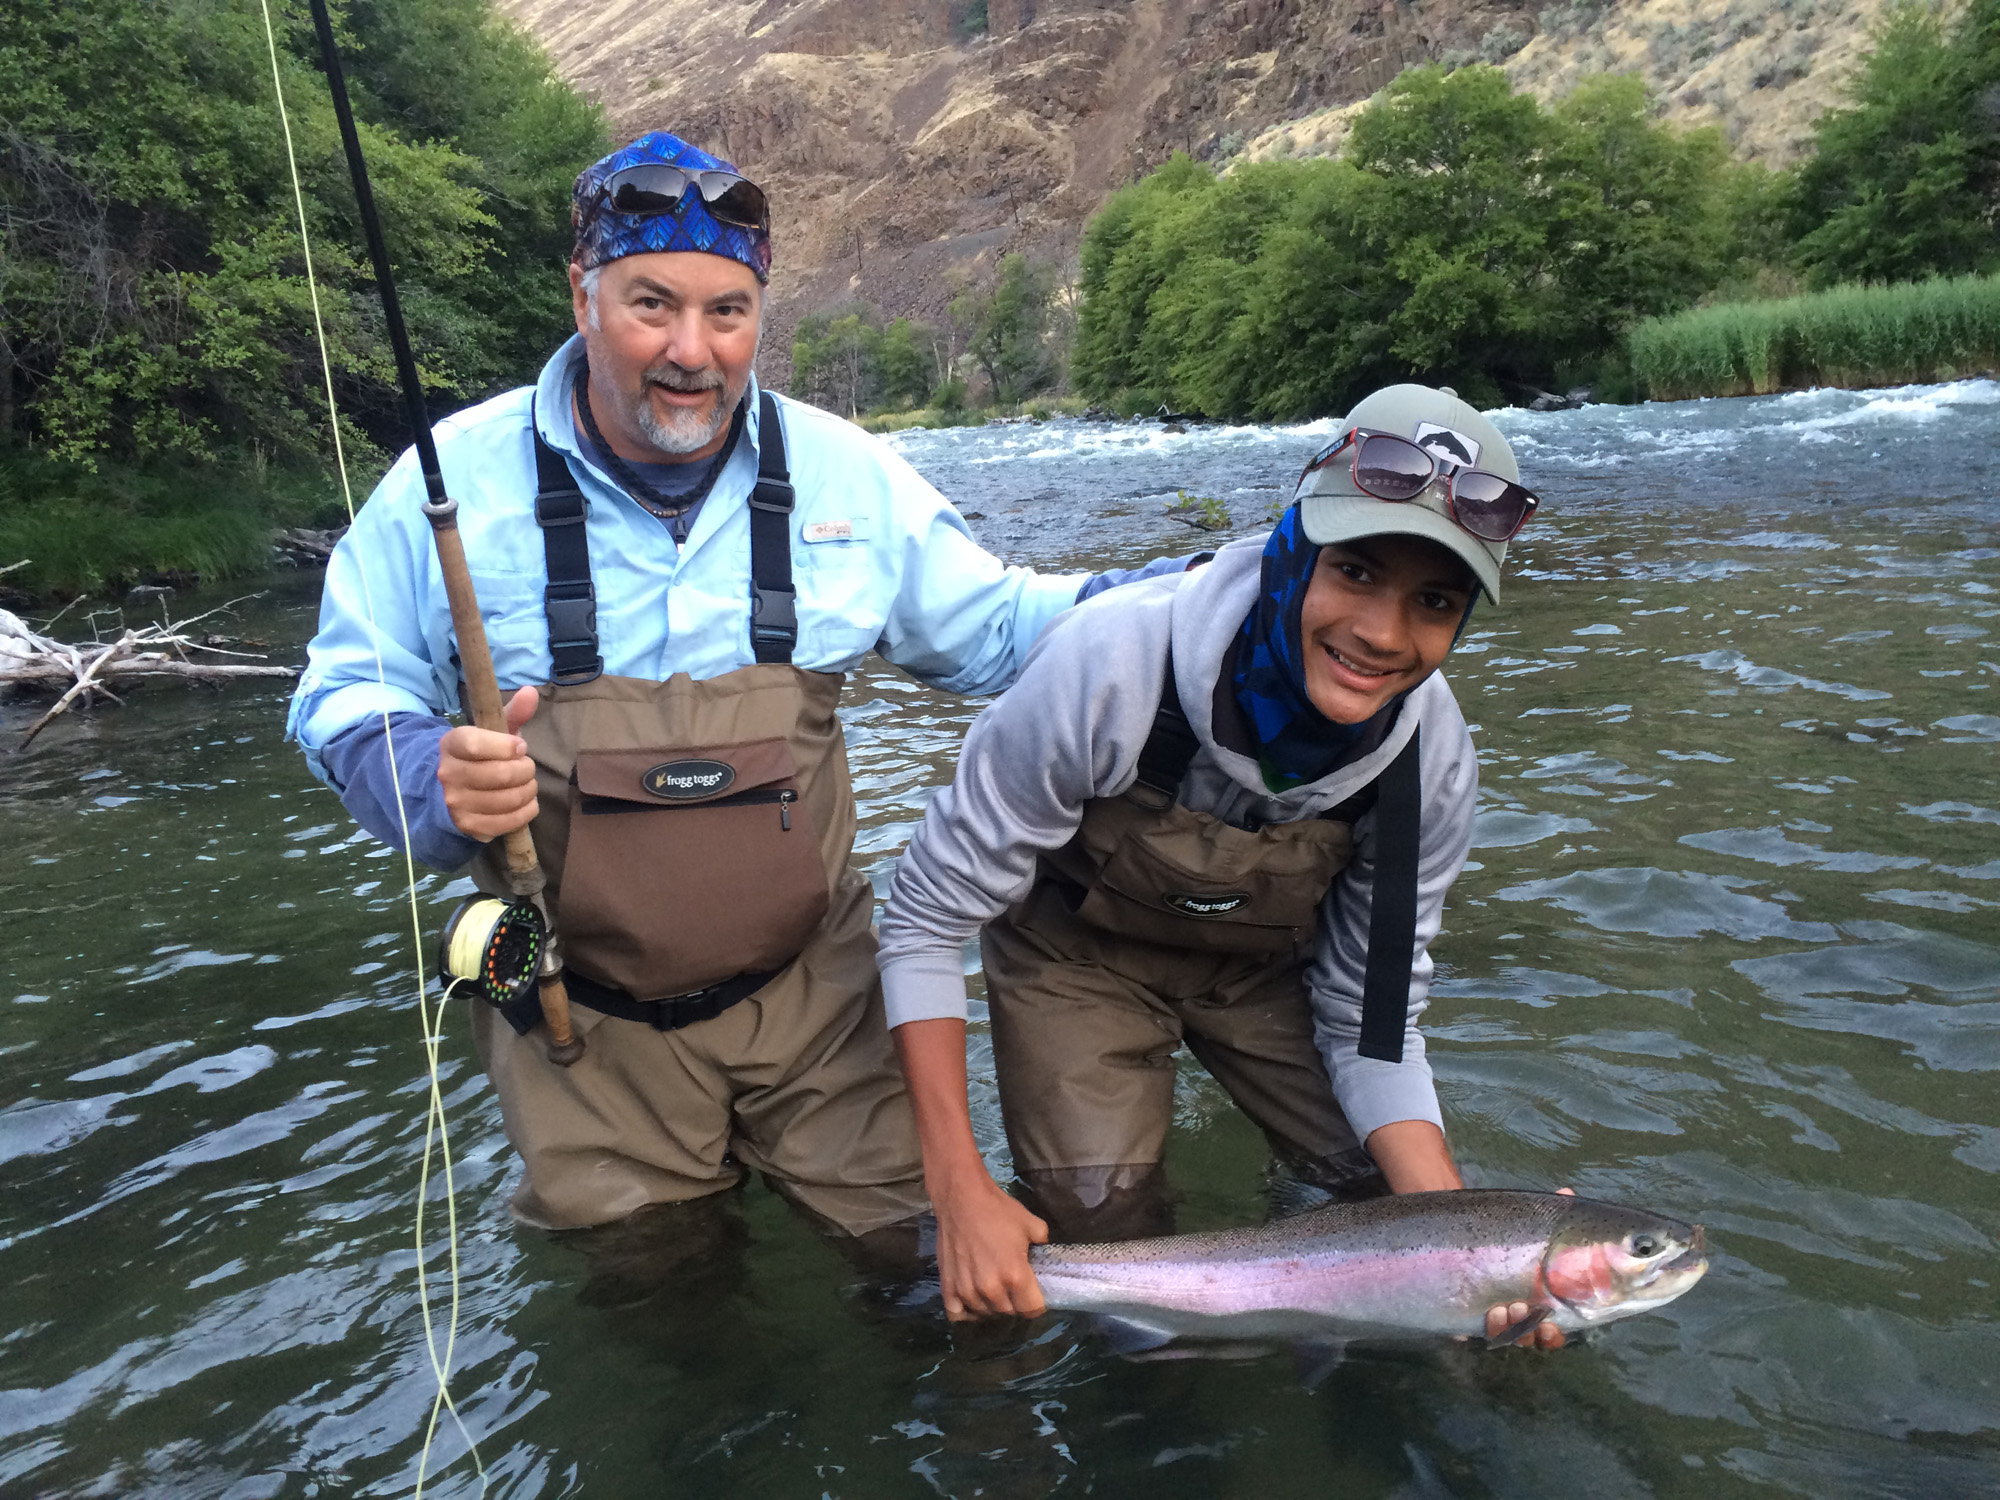 David and grandson Justin stoked on their first steelhead encounter